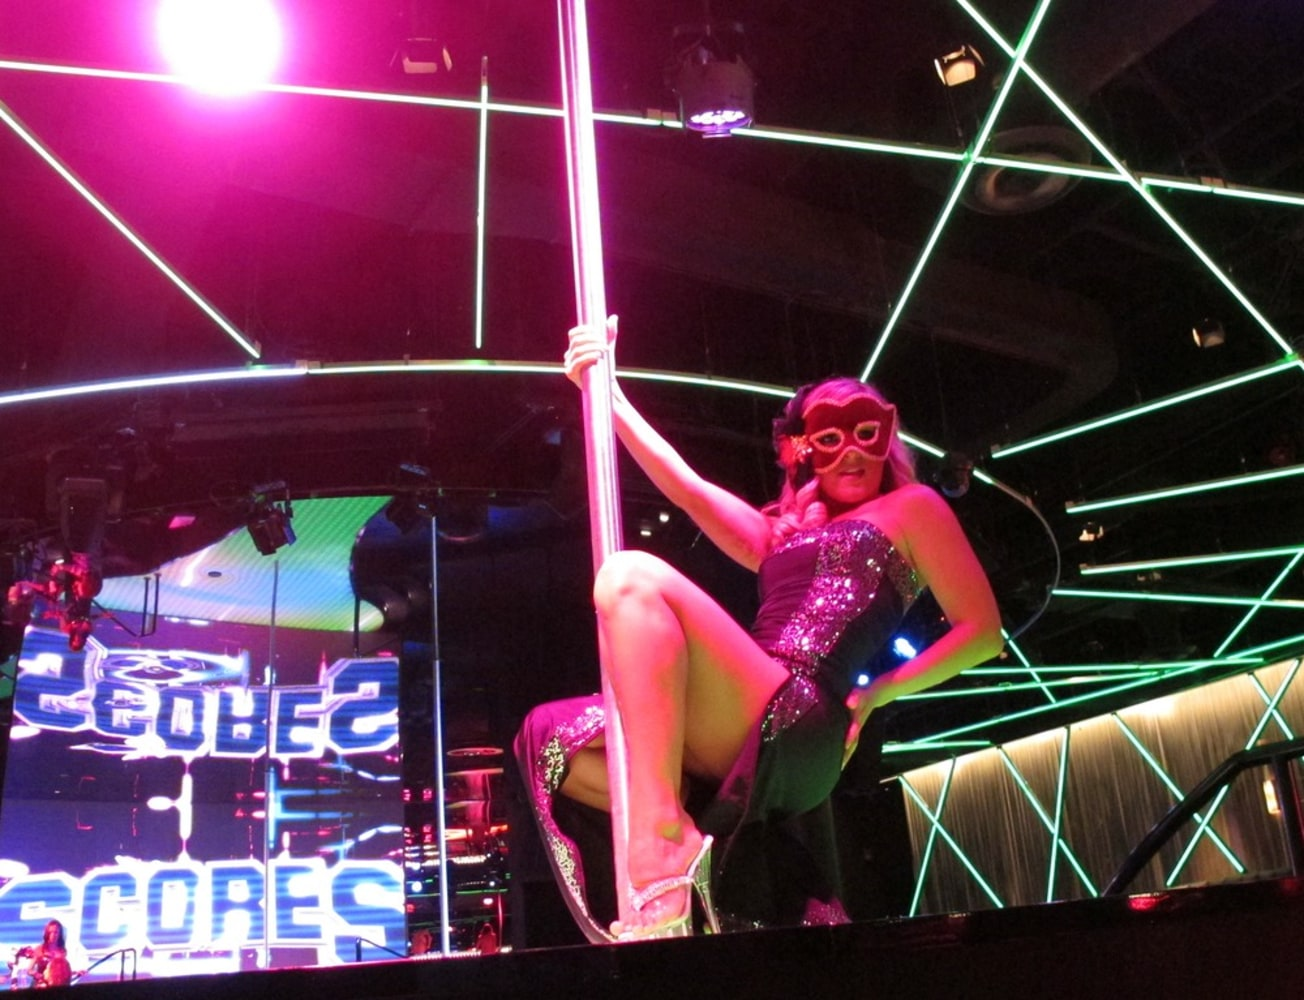 Casino bets on strippers to boost flagging fortunes nbc news for Club inside motor city casino